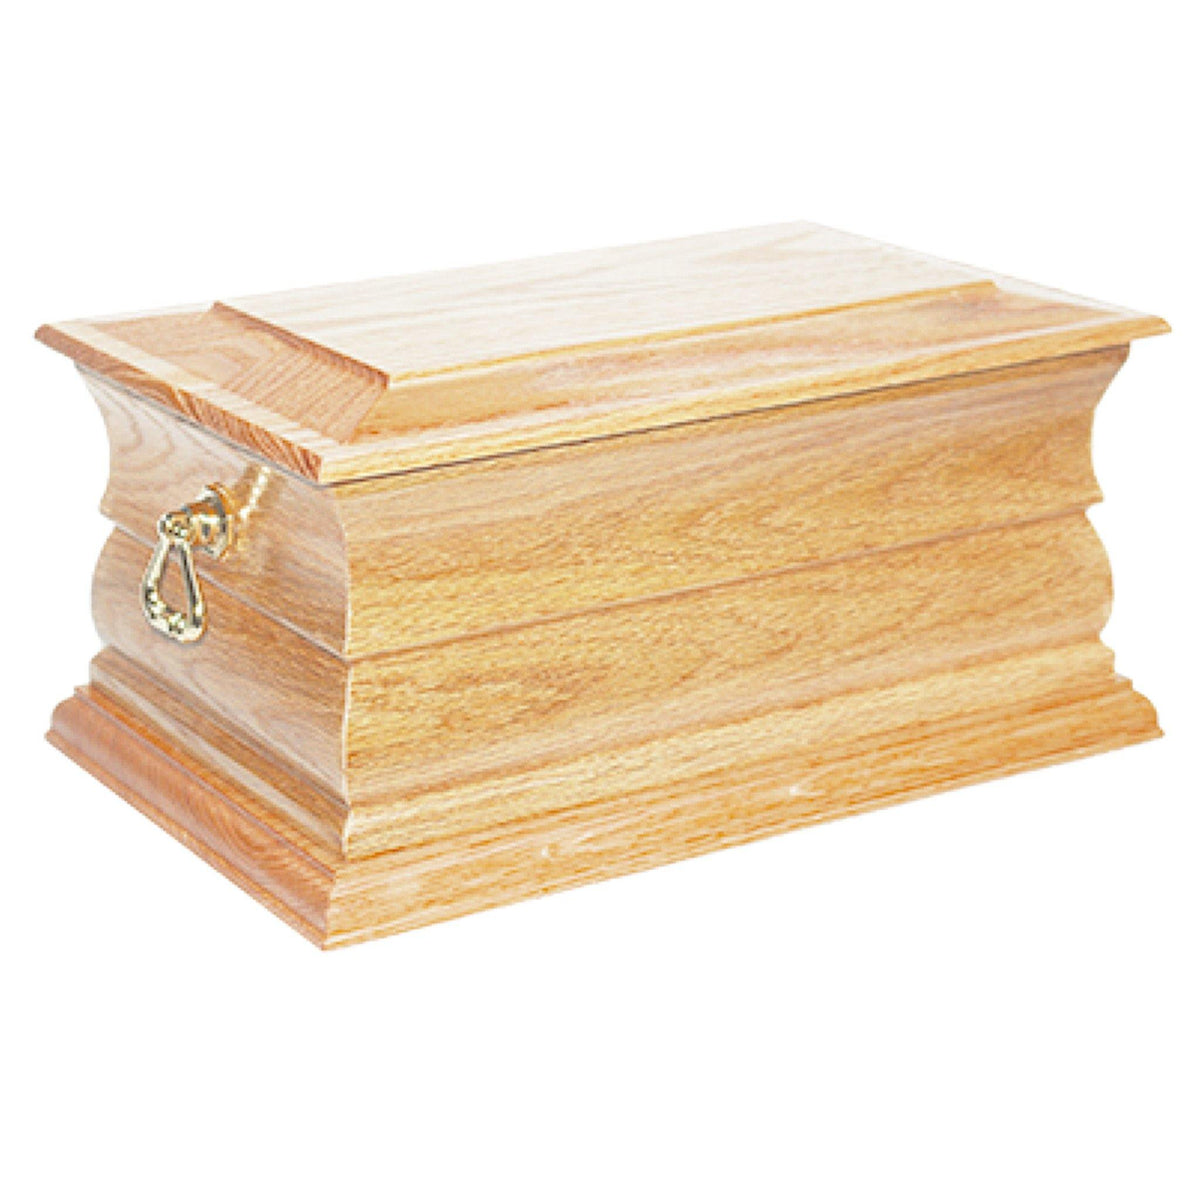 Newquay Cremation Ashes Casket DOUBLE - Urns UK